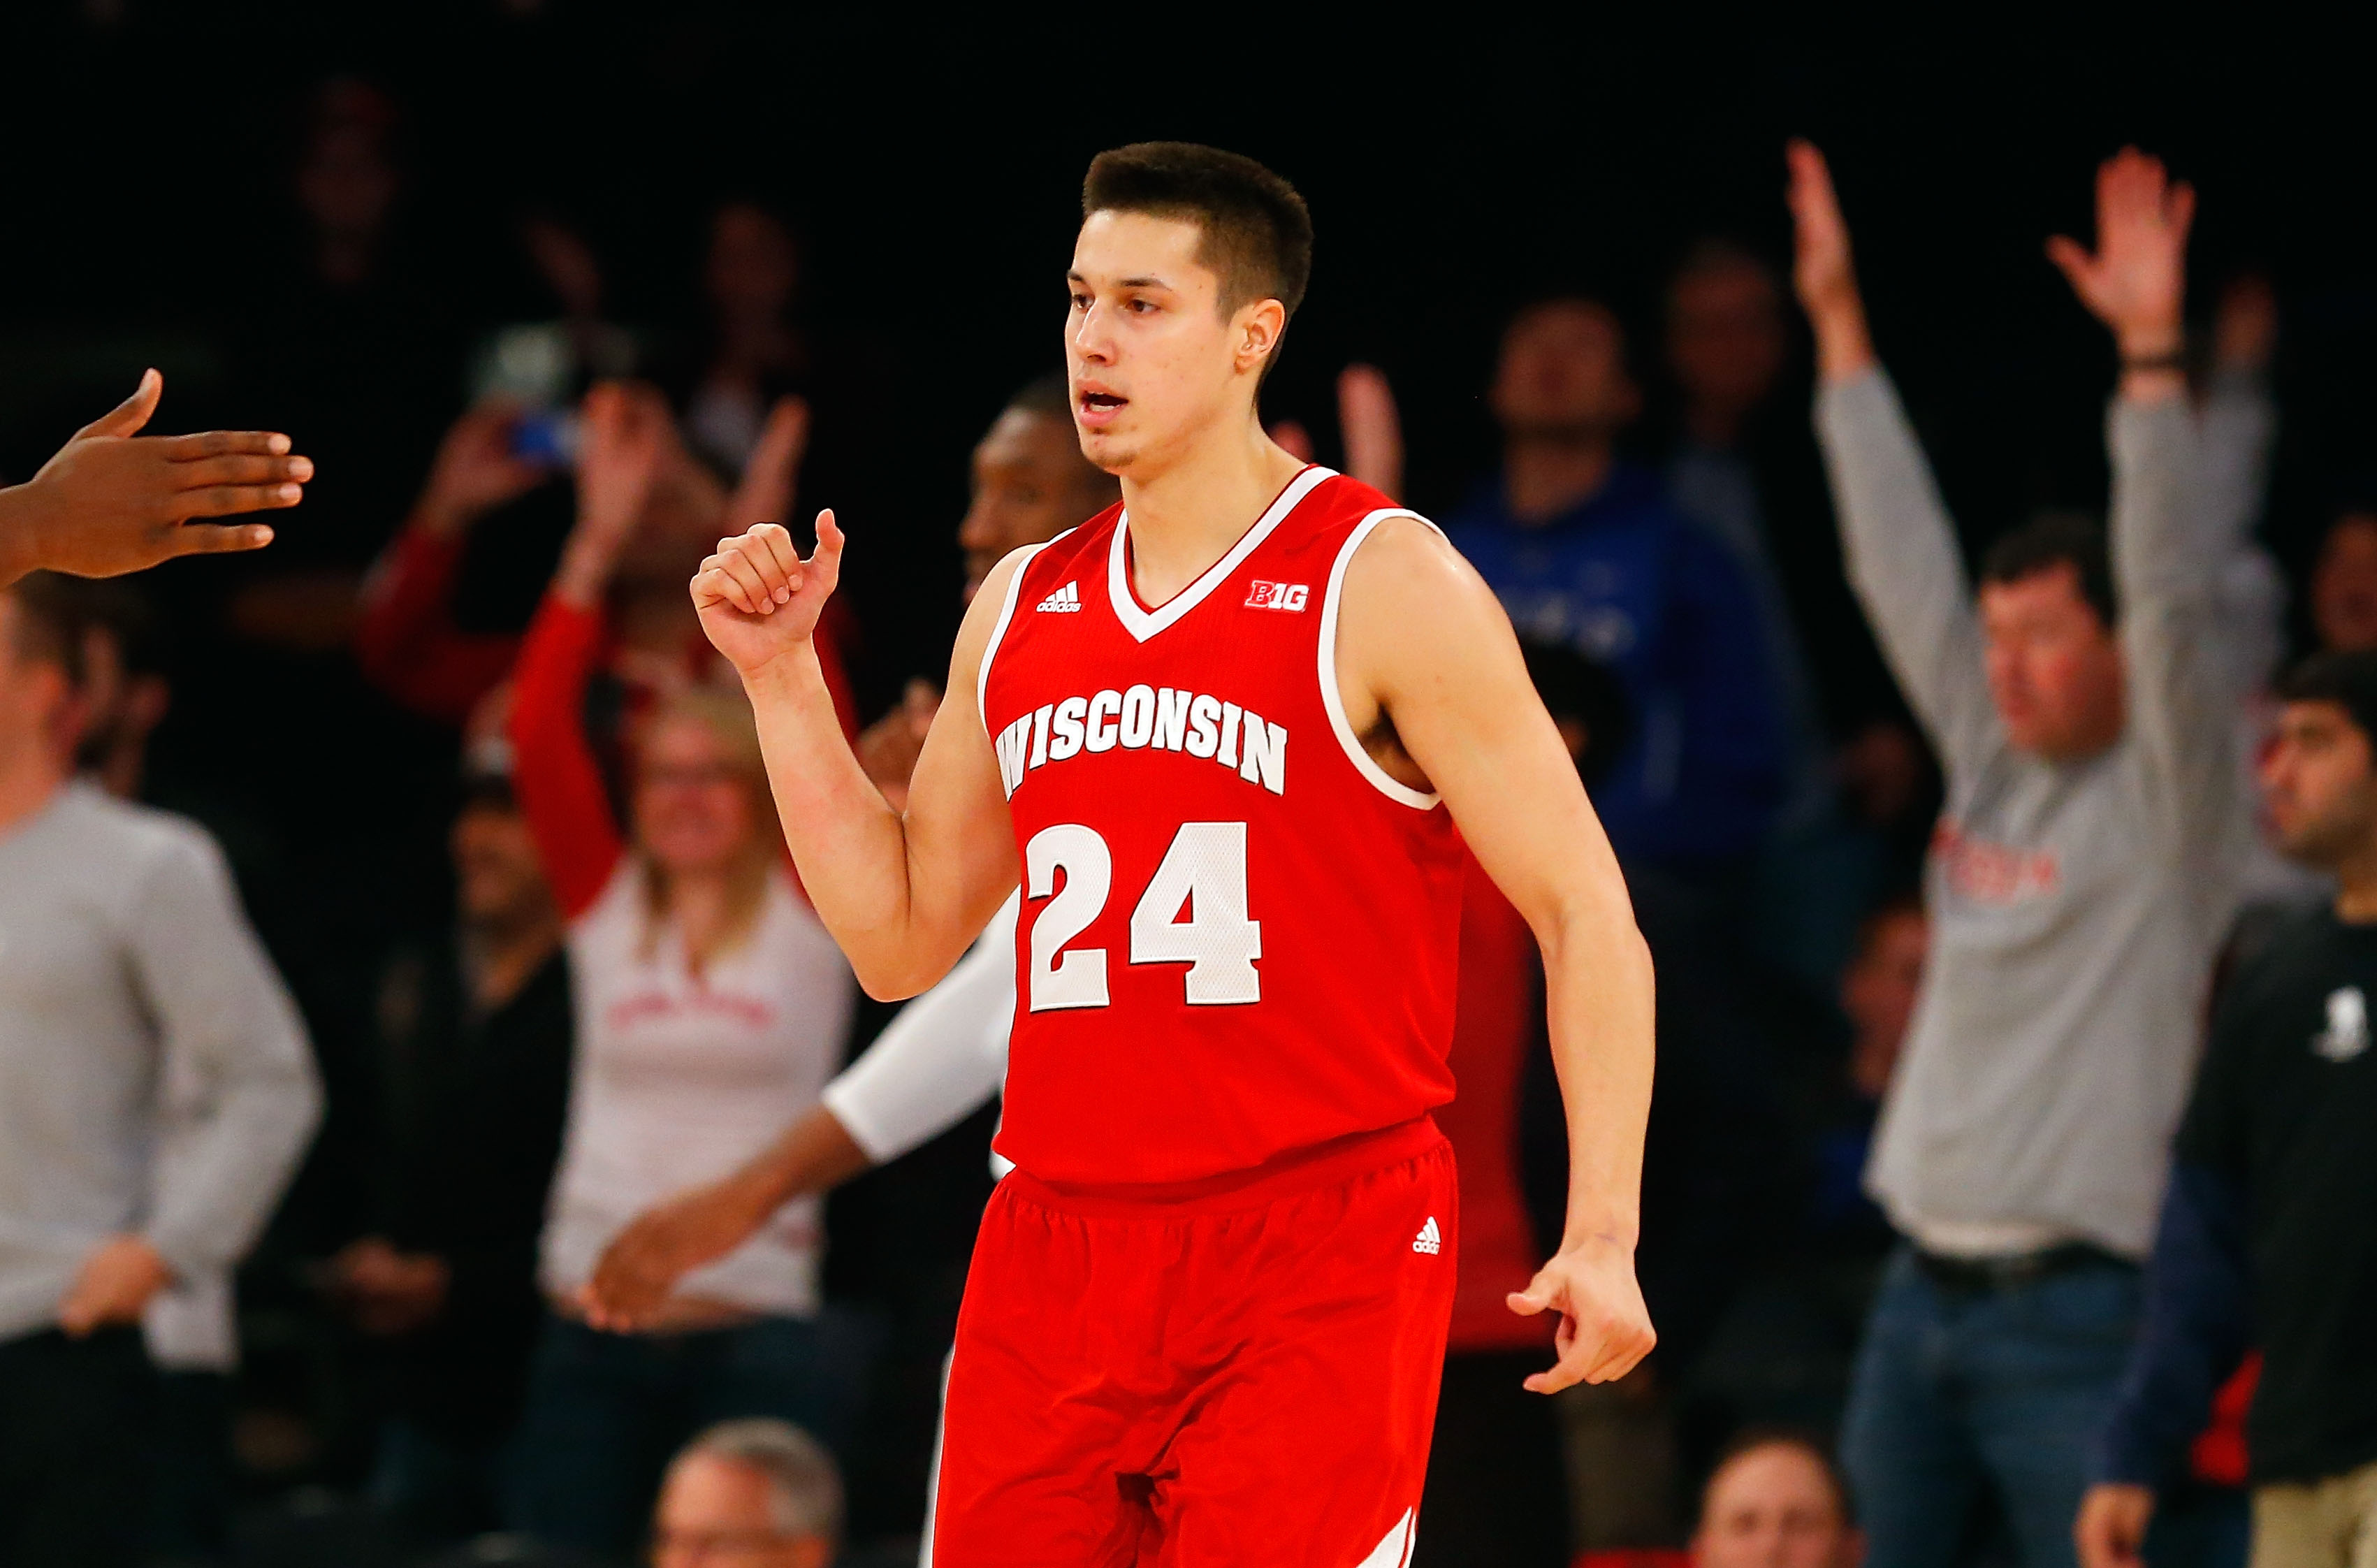 NEW YORK, NY - NOVEMBER 22:  Bronson Koenig #24 of the Wisconsin Badgers reacts after defeating the Virginia Commonwealth Rams after the 2K Classic consolation game at Madison Square Garden on November 22, 2015 in New York City.  (Photo by Jim McIsaac/Getty Images)